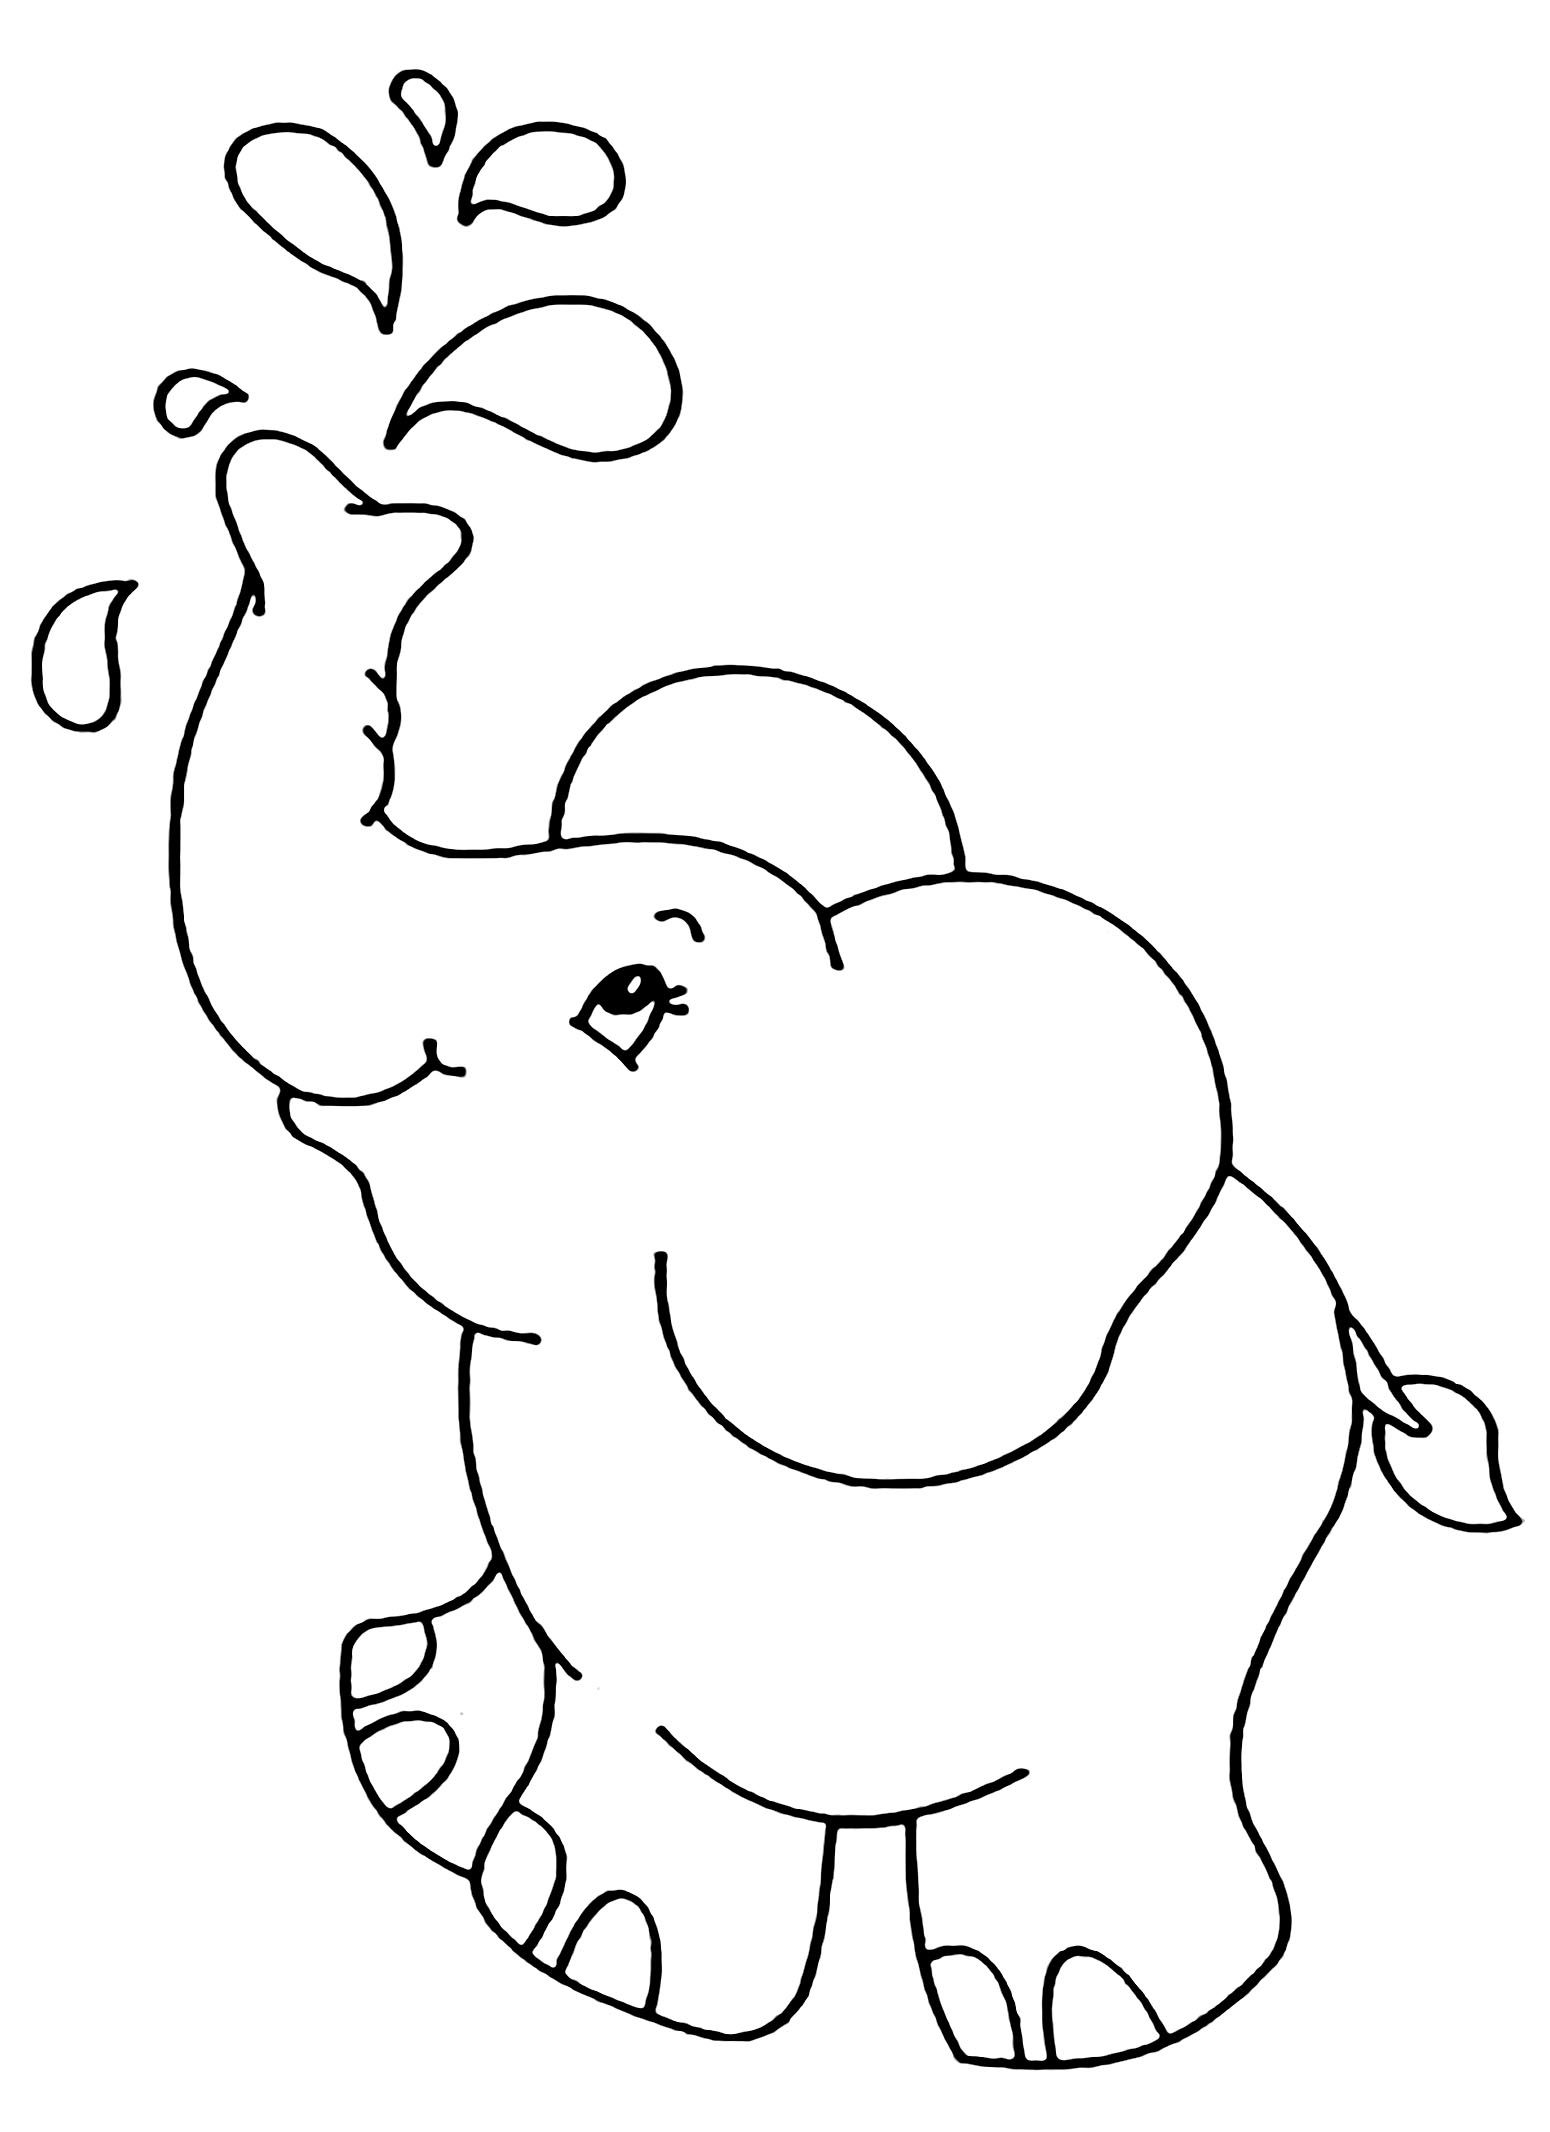 Simple Elephants Coloring Page To Download For Free From The Gallery Elephants Elephant Coloring Page Elephant Colouring Pictures Mandala Coloring Pages